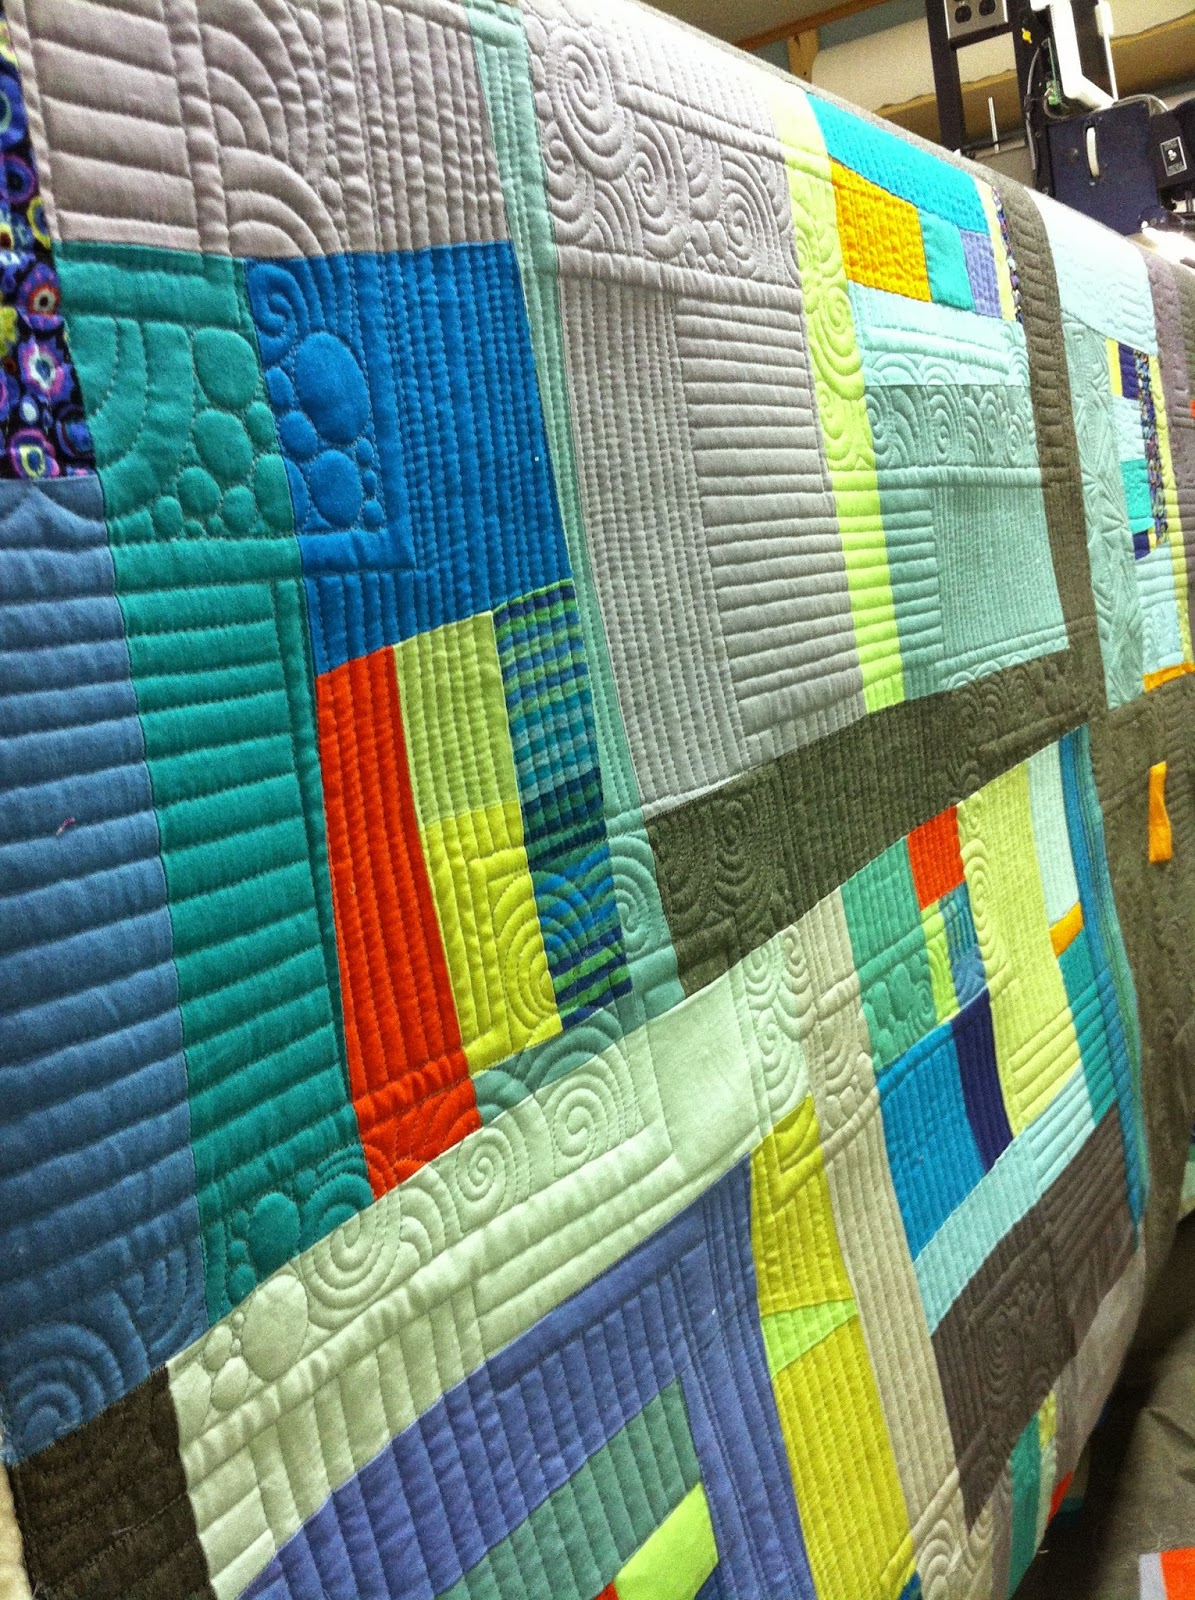 Krista Withers Quilting: Hands on Longarm classes at Island ... : quilting hands - Adamdwight.com